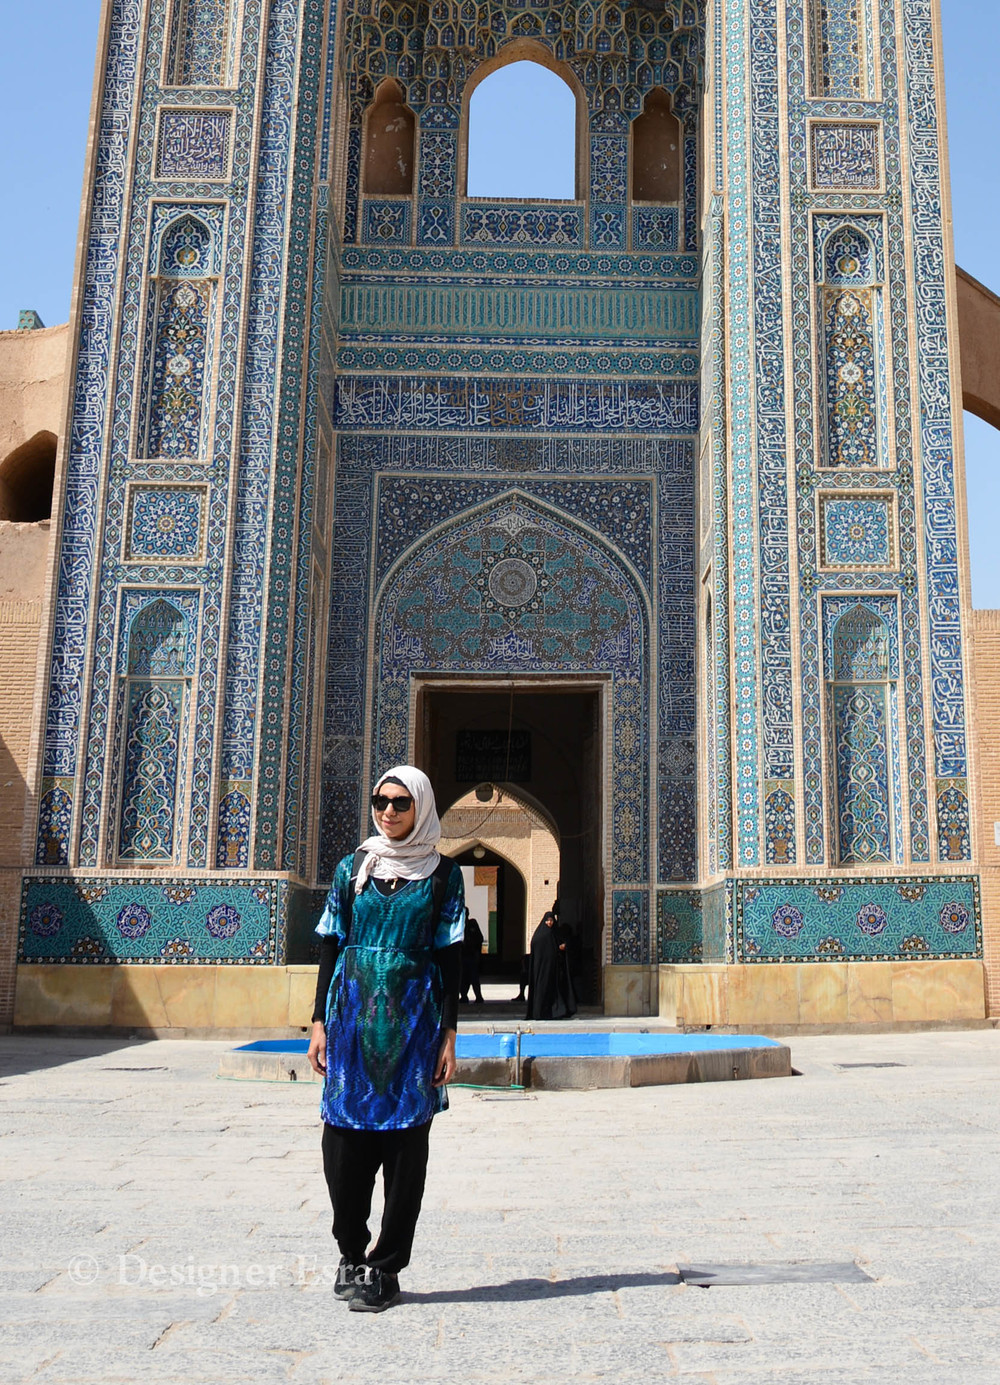 Just slightly long top for a mosque visit in Iran